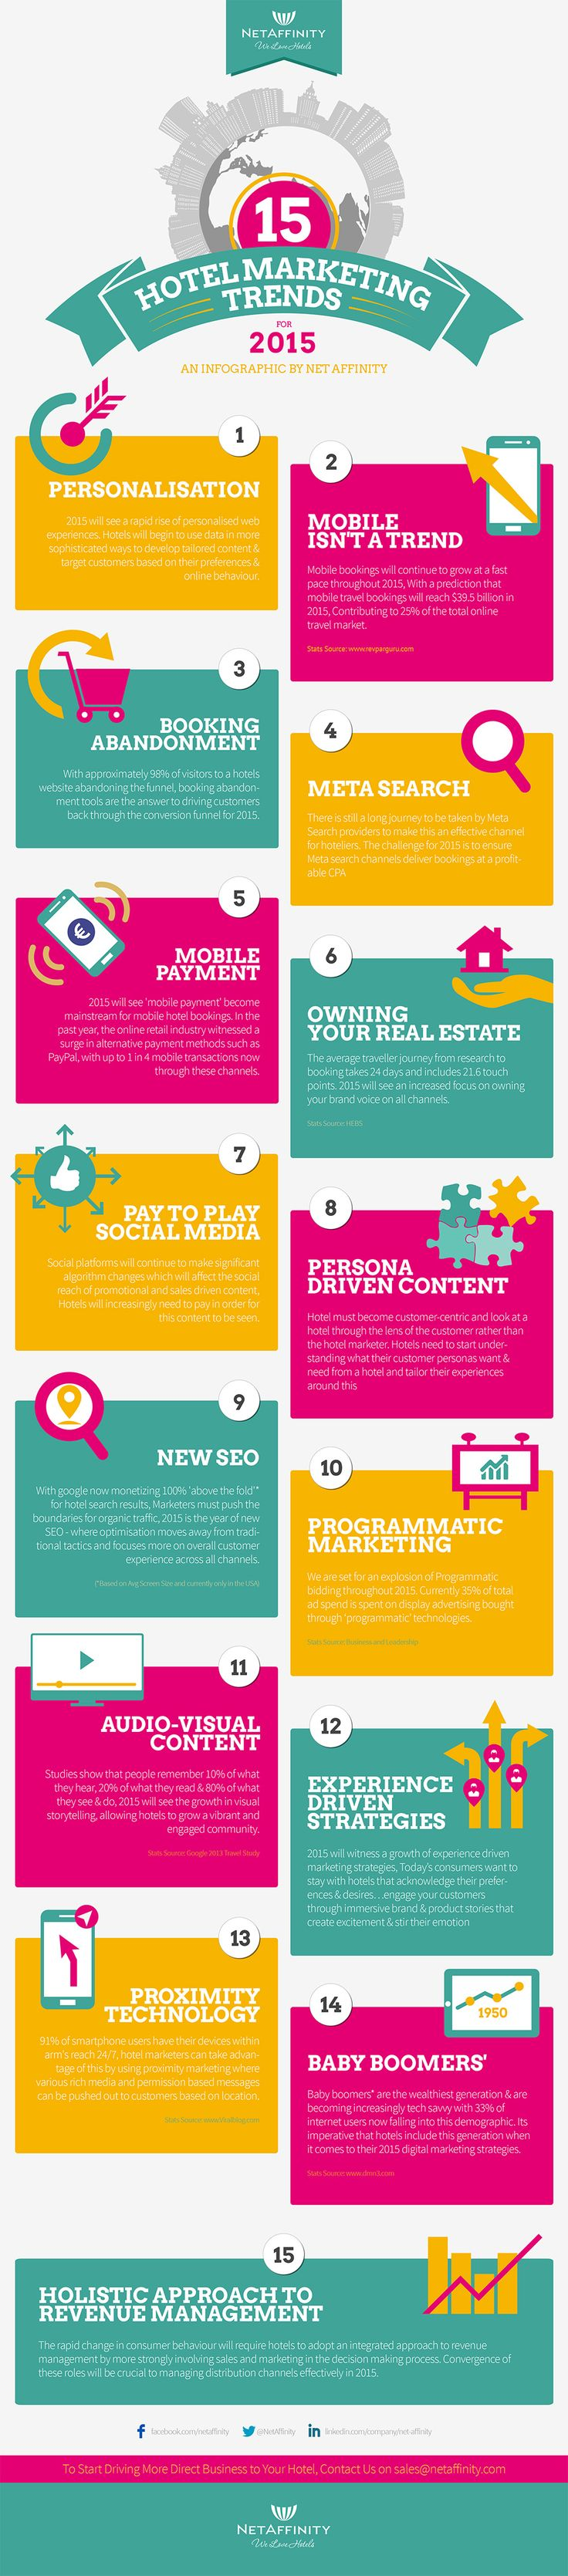 15 Hotel Marketing Trends for 2015 [INFOGRAPHIC].. In less than a decade social media has revolutionised many businesses around the world, and the hotels and hospitality industry has certainly benefited from using platforms such as Twitter and Facebook to attract, engage with and convert travellers into prospects and customers.  Naturally, there's a flipside to the all of this, too. Hotels are especially vulnerable to bad reviews and negative word-of-mouth – reputation can be crushed